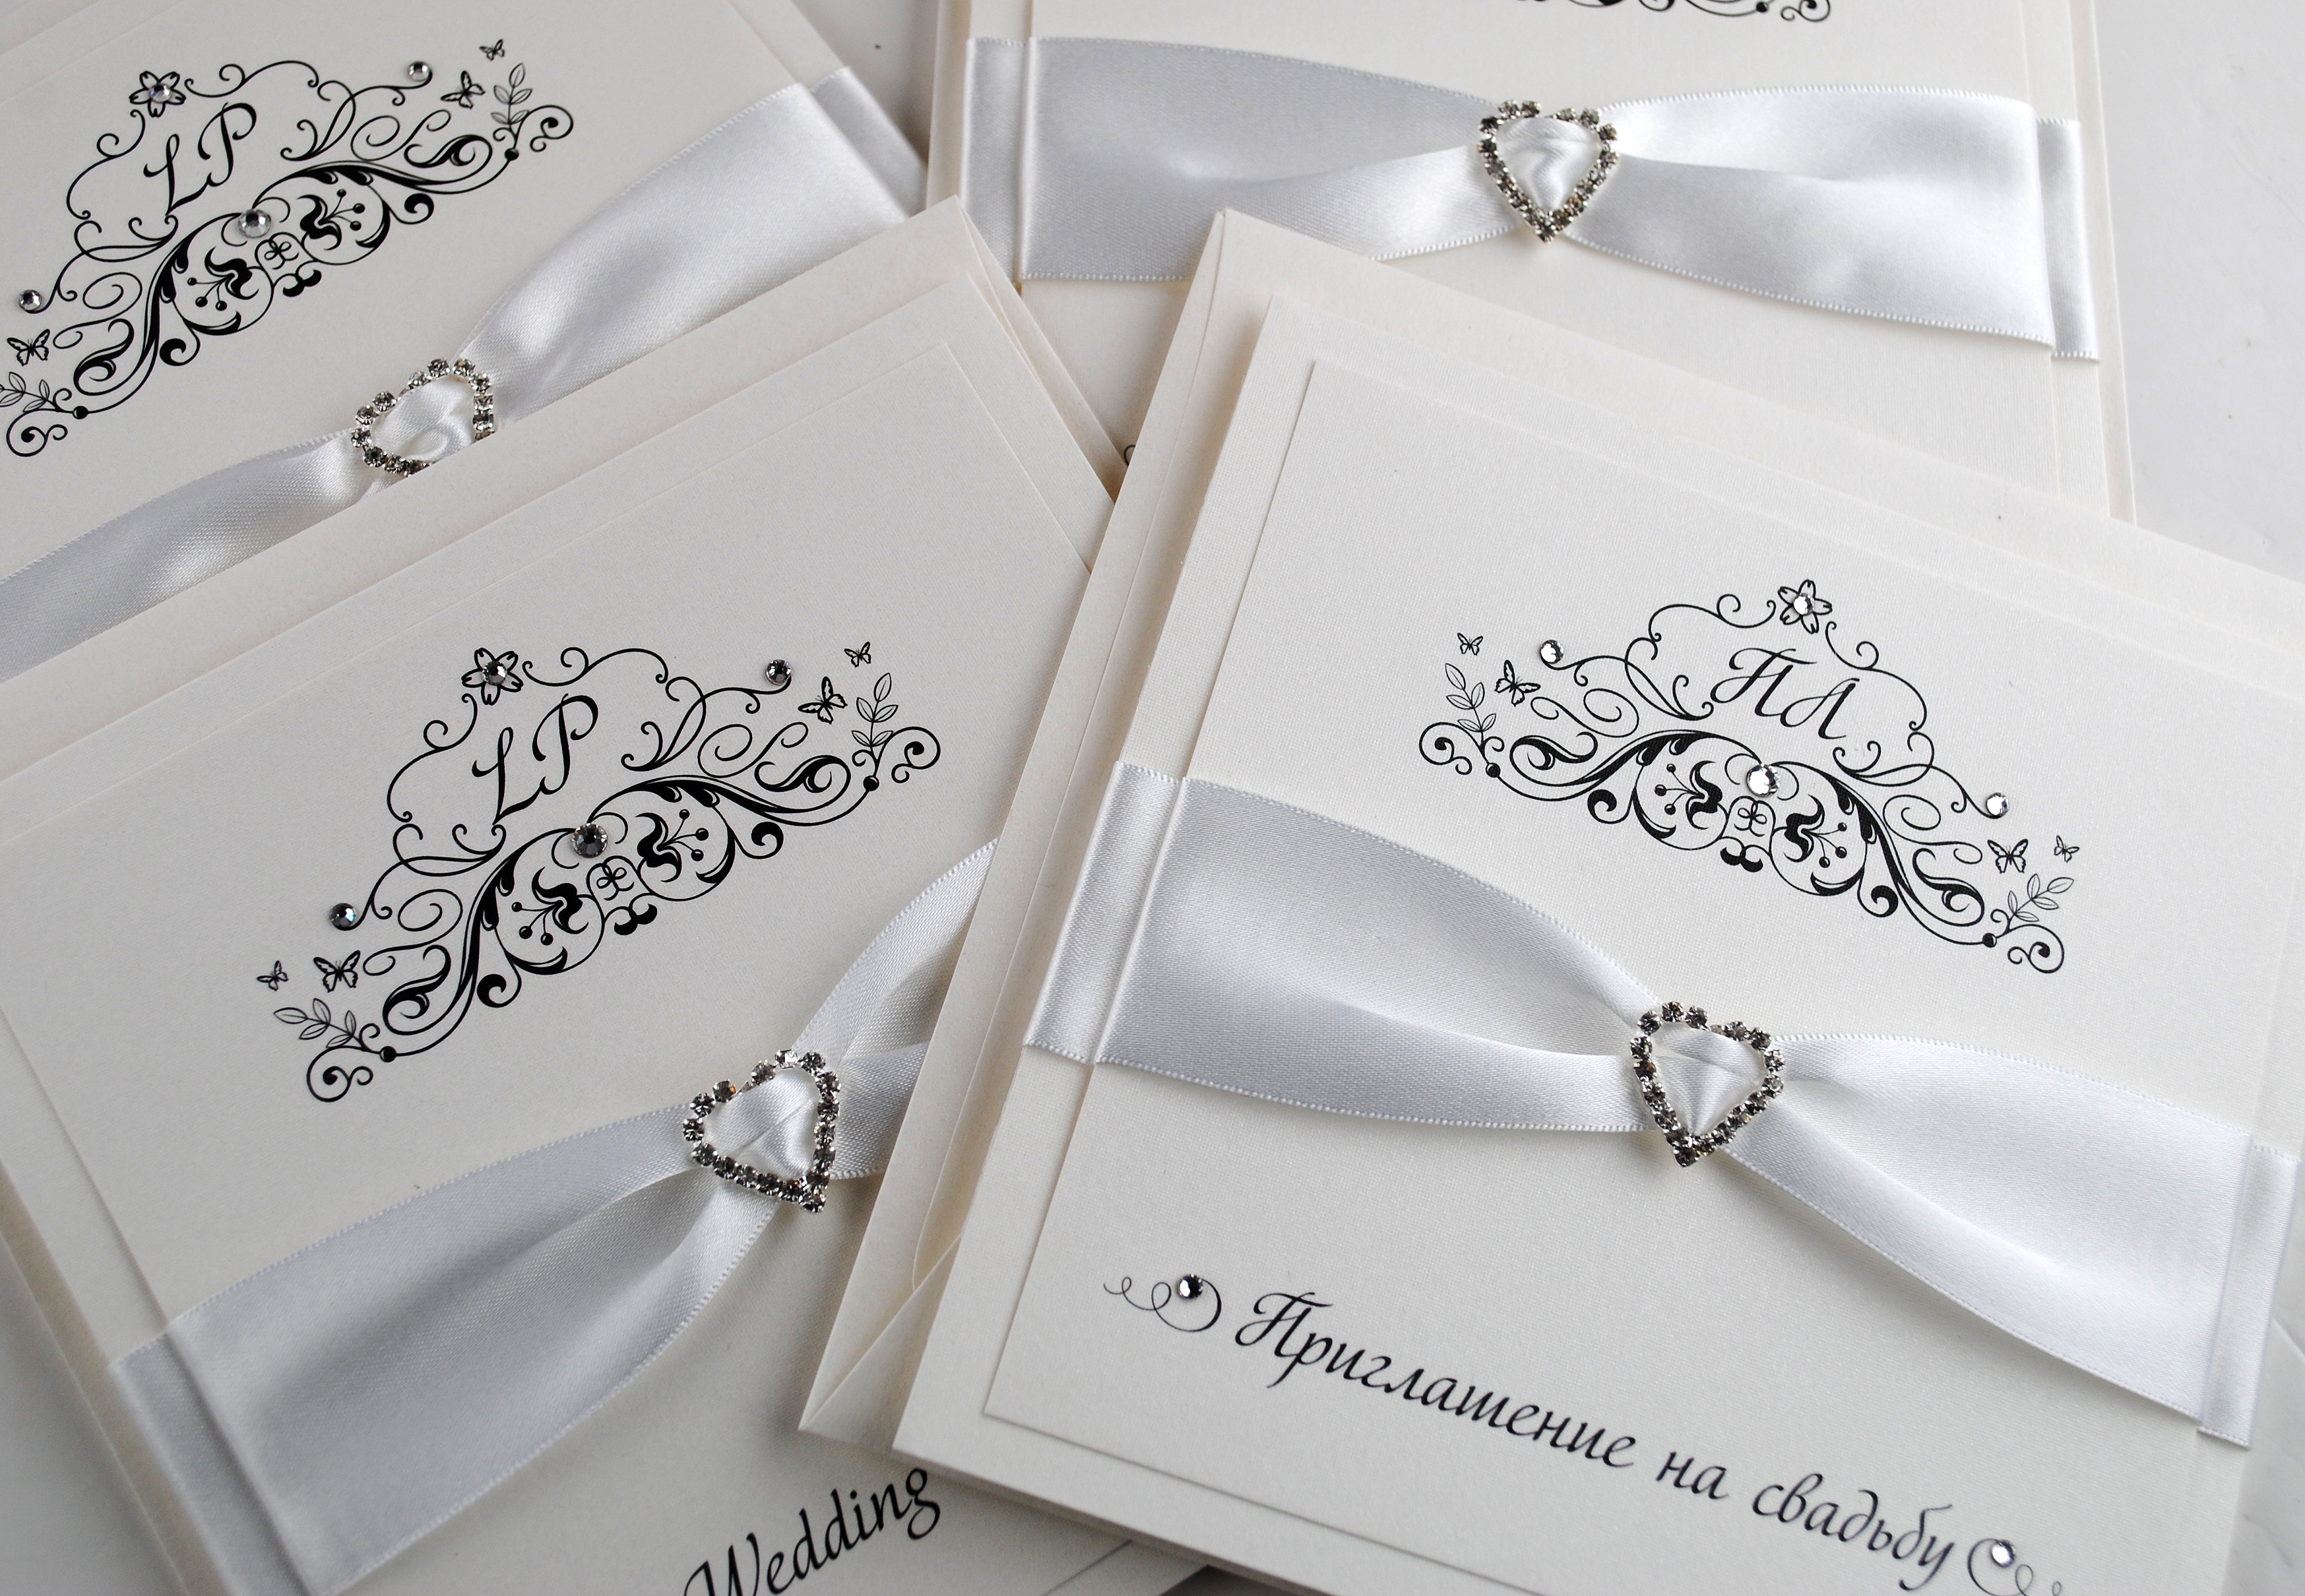 How to Write Your Wedding Invitation - Wedding Invitation Boutique